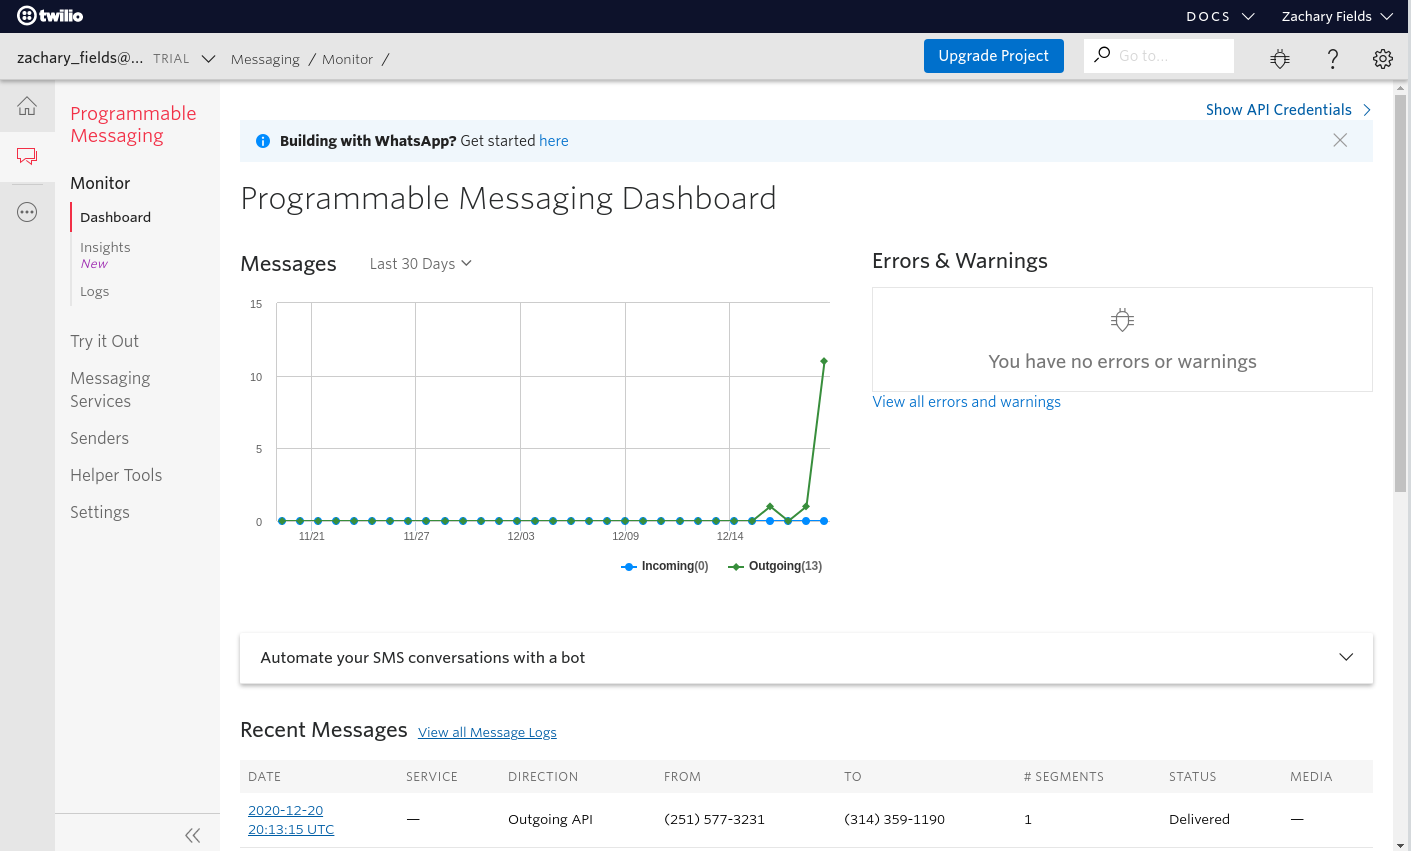 Twilio.com: Programmable Messaging Dashboard